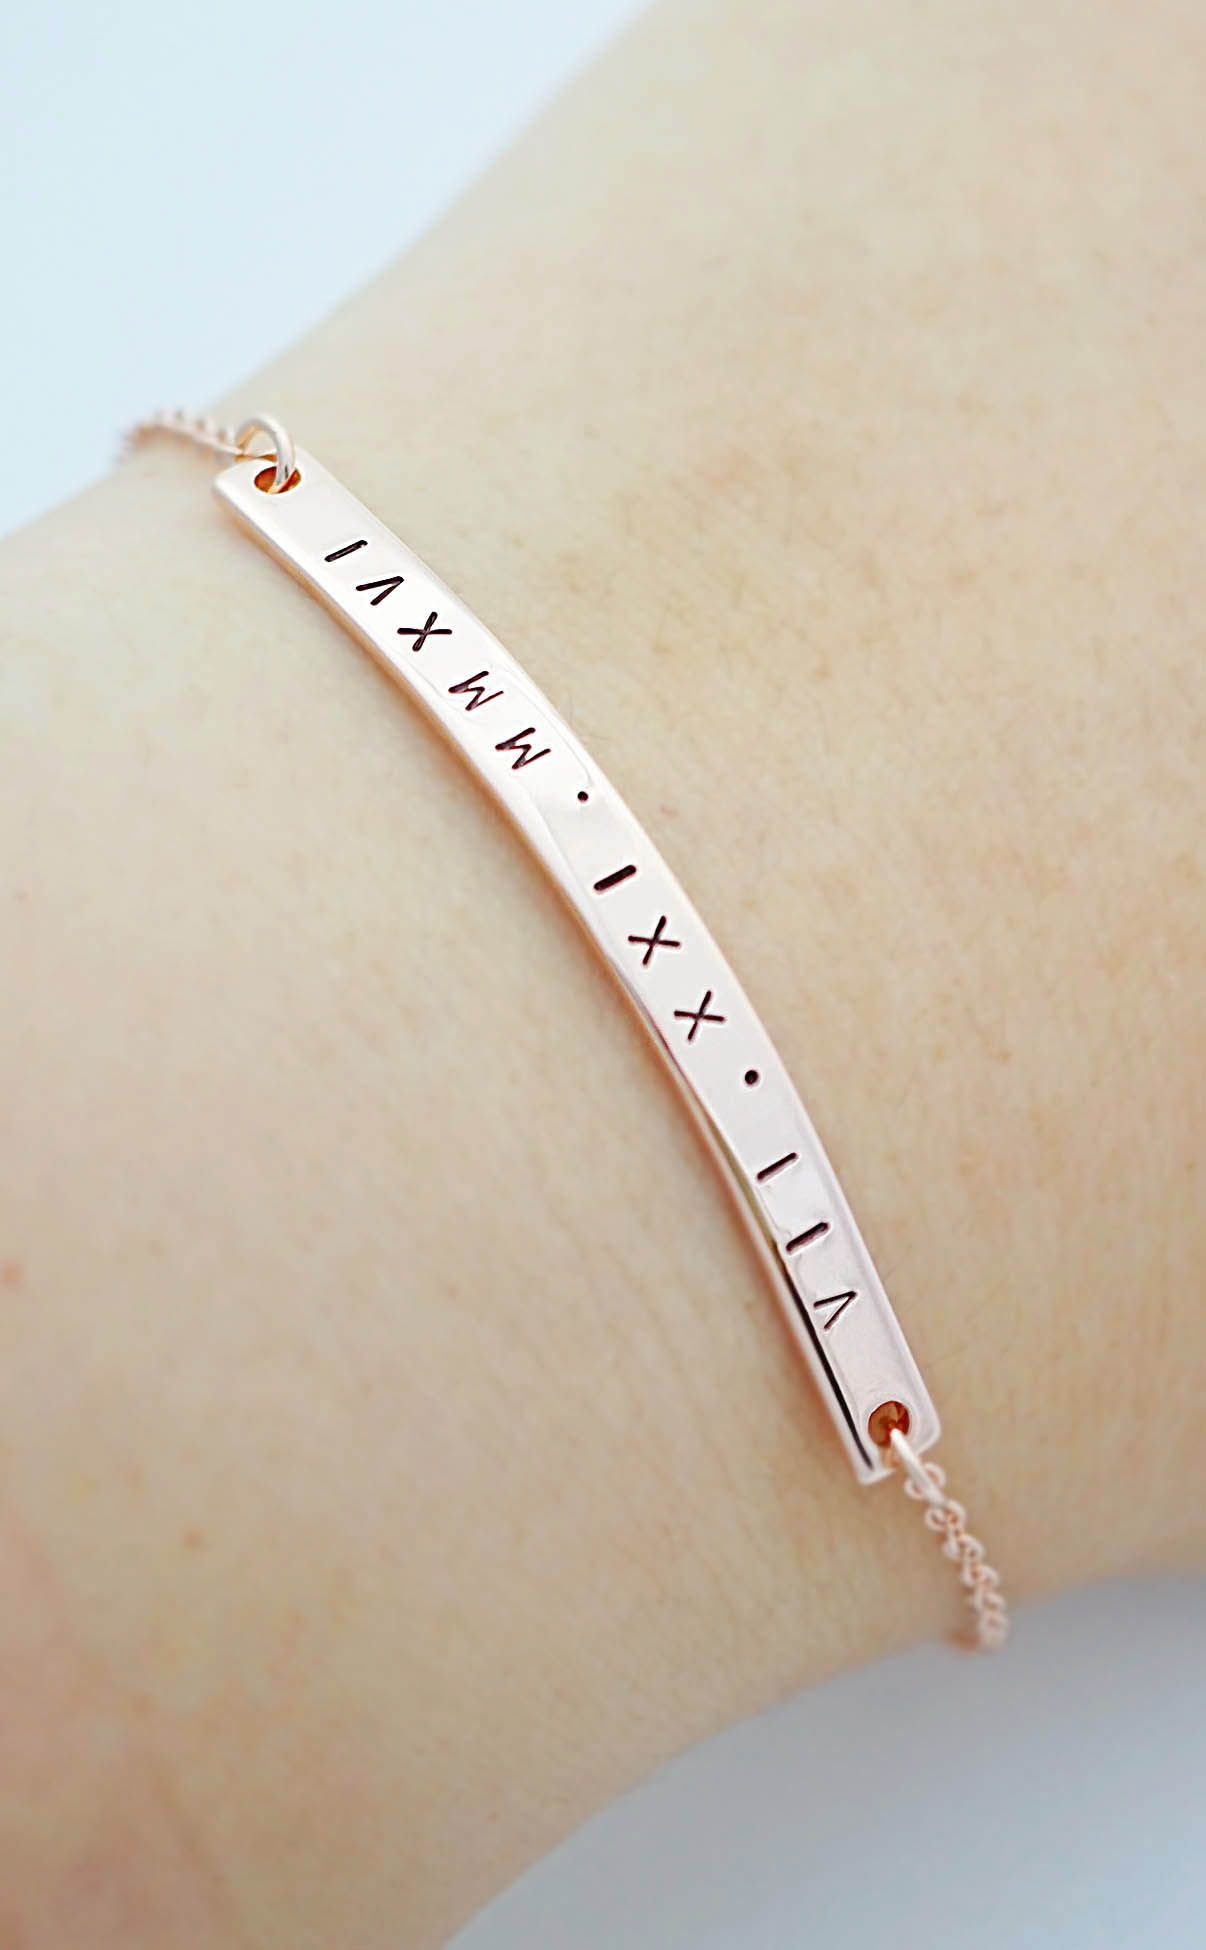 lat coordinate by latitude jewelry tatum long longitude friend pin location and bracelet gps gift bradley best